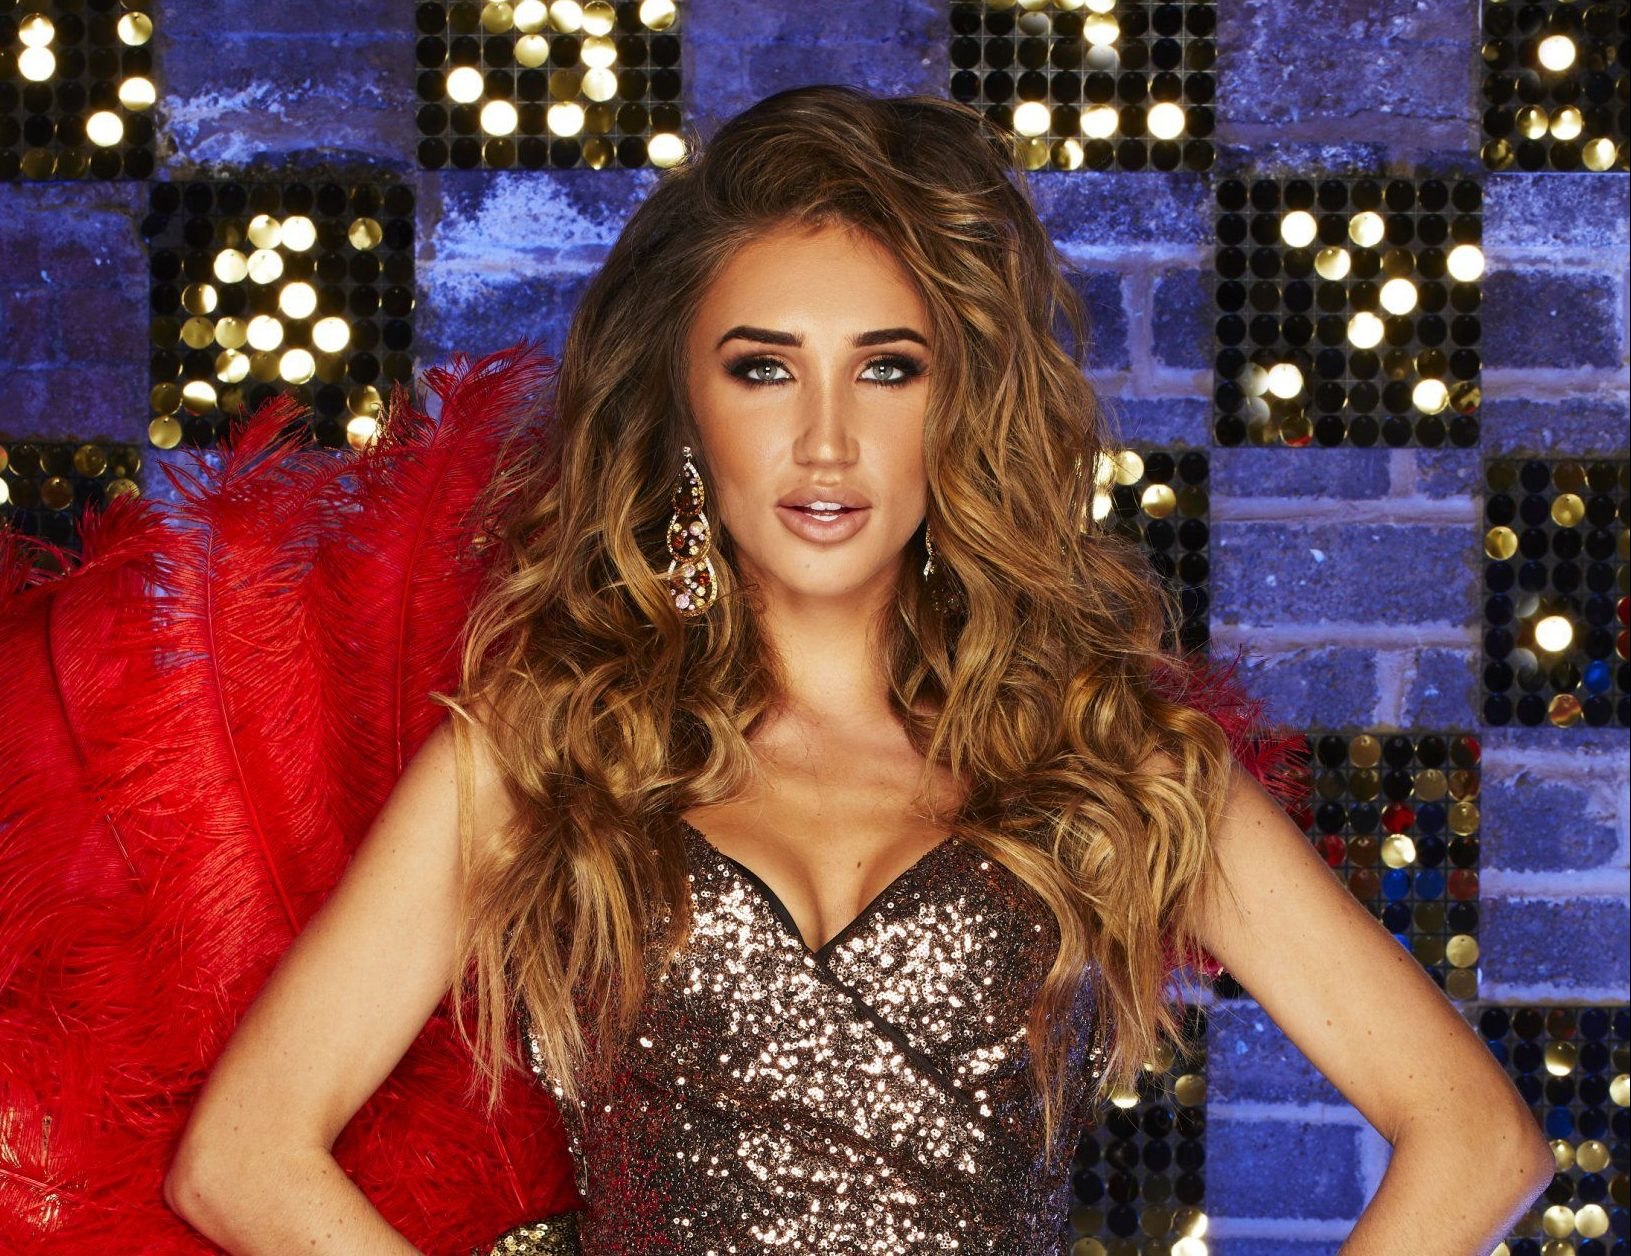 STRICTLY EMBARGOED PICTURE: FOR PUBLICATION FROM TUESDAY 20th MARCH 2018 From Spungold Productions THE REAL FULL MONTY : LADIES NIGHT Thursday 29th March 2018 on ITV Pictured: Megan McKenna. Hot on the heels of the return of ?The Real Full Monty?, eight female celebrities are gearing up for the performance of their lives in ?The Real Full Monty: Ladies? Night?, determined to show the boys how it?s done and raise awareness of breast cancer. This ?sister? commission to The Real Full Monty will see two unforgettable nights running on ITV. The men?s Real Full Monty might be bigger and better than ever before, but the eight brave ladies ready to take them on are TV presenter Coleen Nolan, broadcaster Victoria Derbyshire, Emmerdale actress Sally Dexter, reality TV star Megan McKenna, former Liberty X singer Michelle Heaton, actress Helen Lederer, TV legend Ruth Madoc and presenter Sarah-Jane Crawford - for all of whom the issue of breast cancer awareness is close to their hearts. The ladies? mission is to pull together to create a show-stopping performance that will wow the audience as they battle to overcome their nerves and inhibitions, learn to love their bodies and dare to bare for a good cause. Along the way they visit the legendary Moulin Rouge in Paris to get inspiration for the show. ? ITV Photographer: Nicky Johnston This photograph is ? ITV and can only be reproduced for editorial purposes directly in connection with the programme THE REAL FULL MONTY : LADIES NIGHT or ITV. Once made available by the ITV Picture Desk, this photograph can be reproduced once only up until the Transmission date and no reproduction fee will be charged. Any subsequent usage may incur a fee. This photograph must not be syndicated to any other publication or website, or permanently archived, without the express written permission of ITV Picture Desk. Full Terms and conditions are available on the website www.itvpictures.com